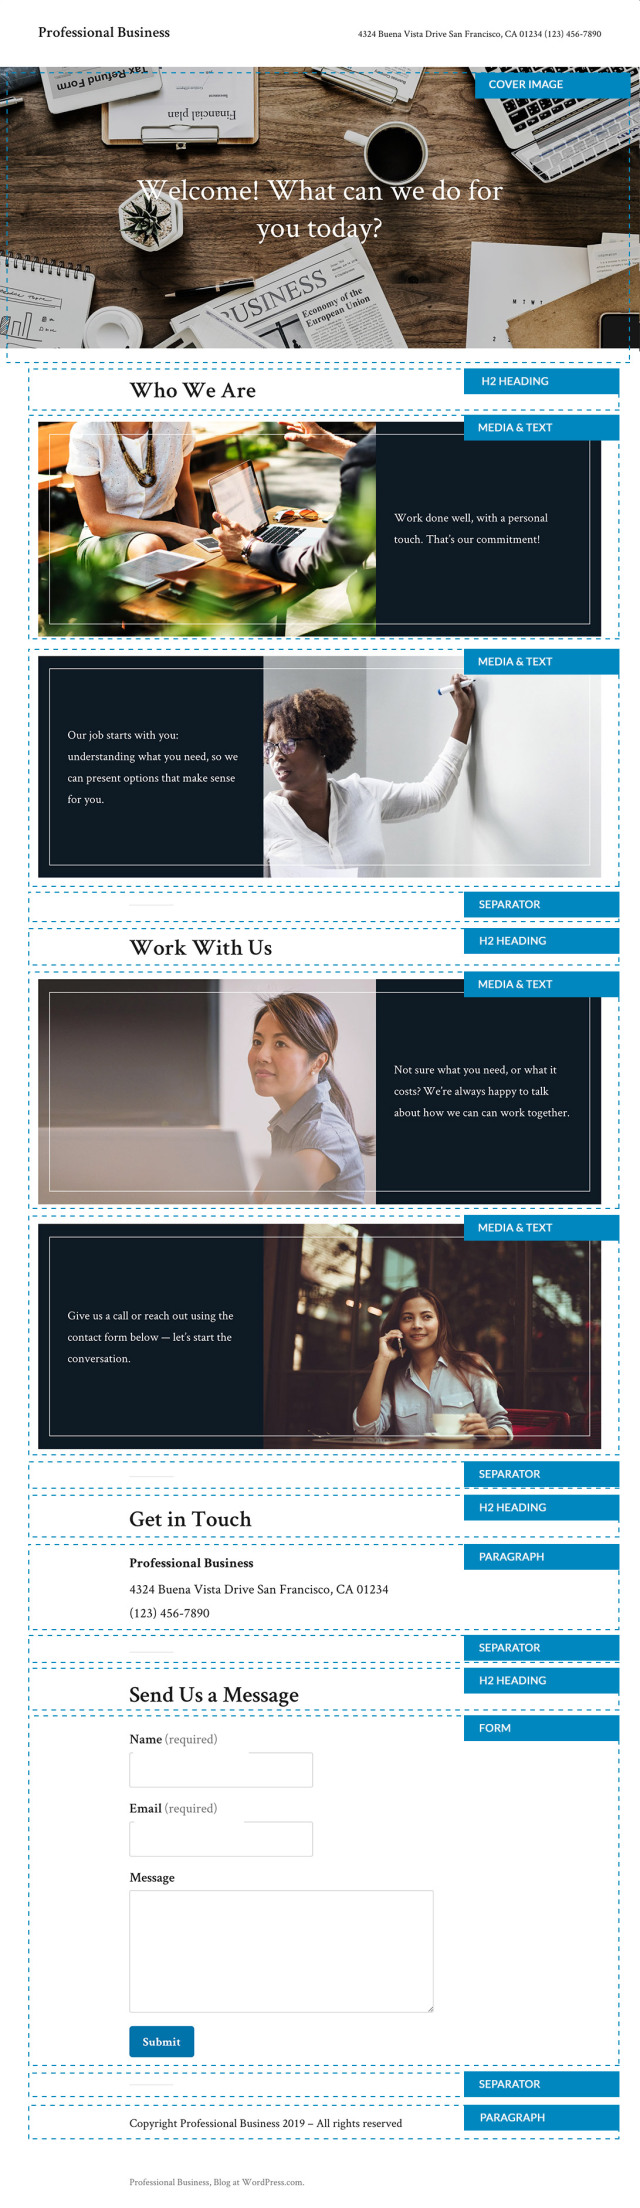 Wordpress Twenty Nineteen (2019) child theme to create Free Professional Business Website